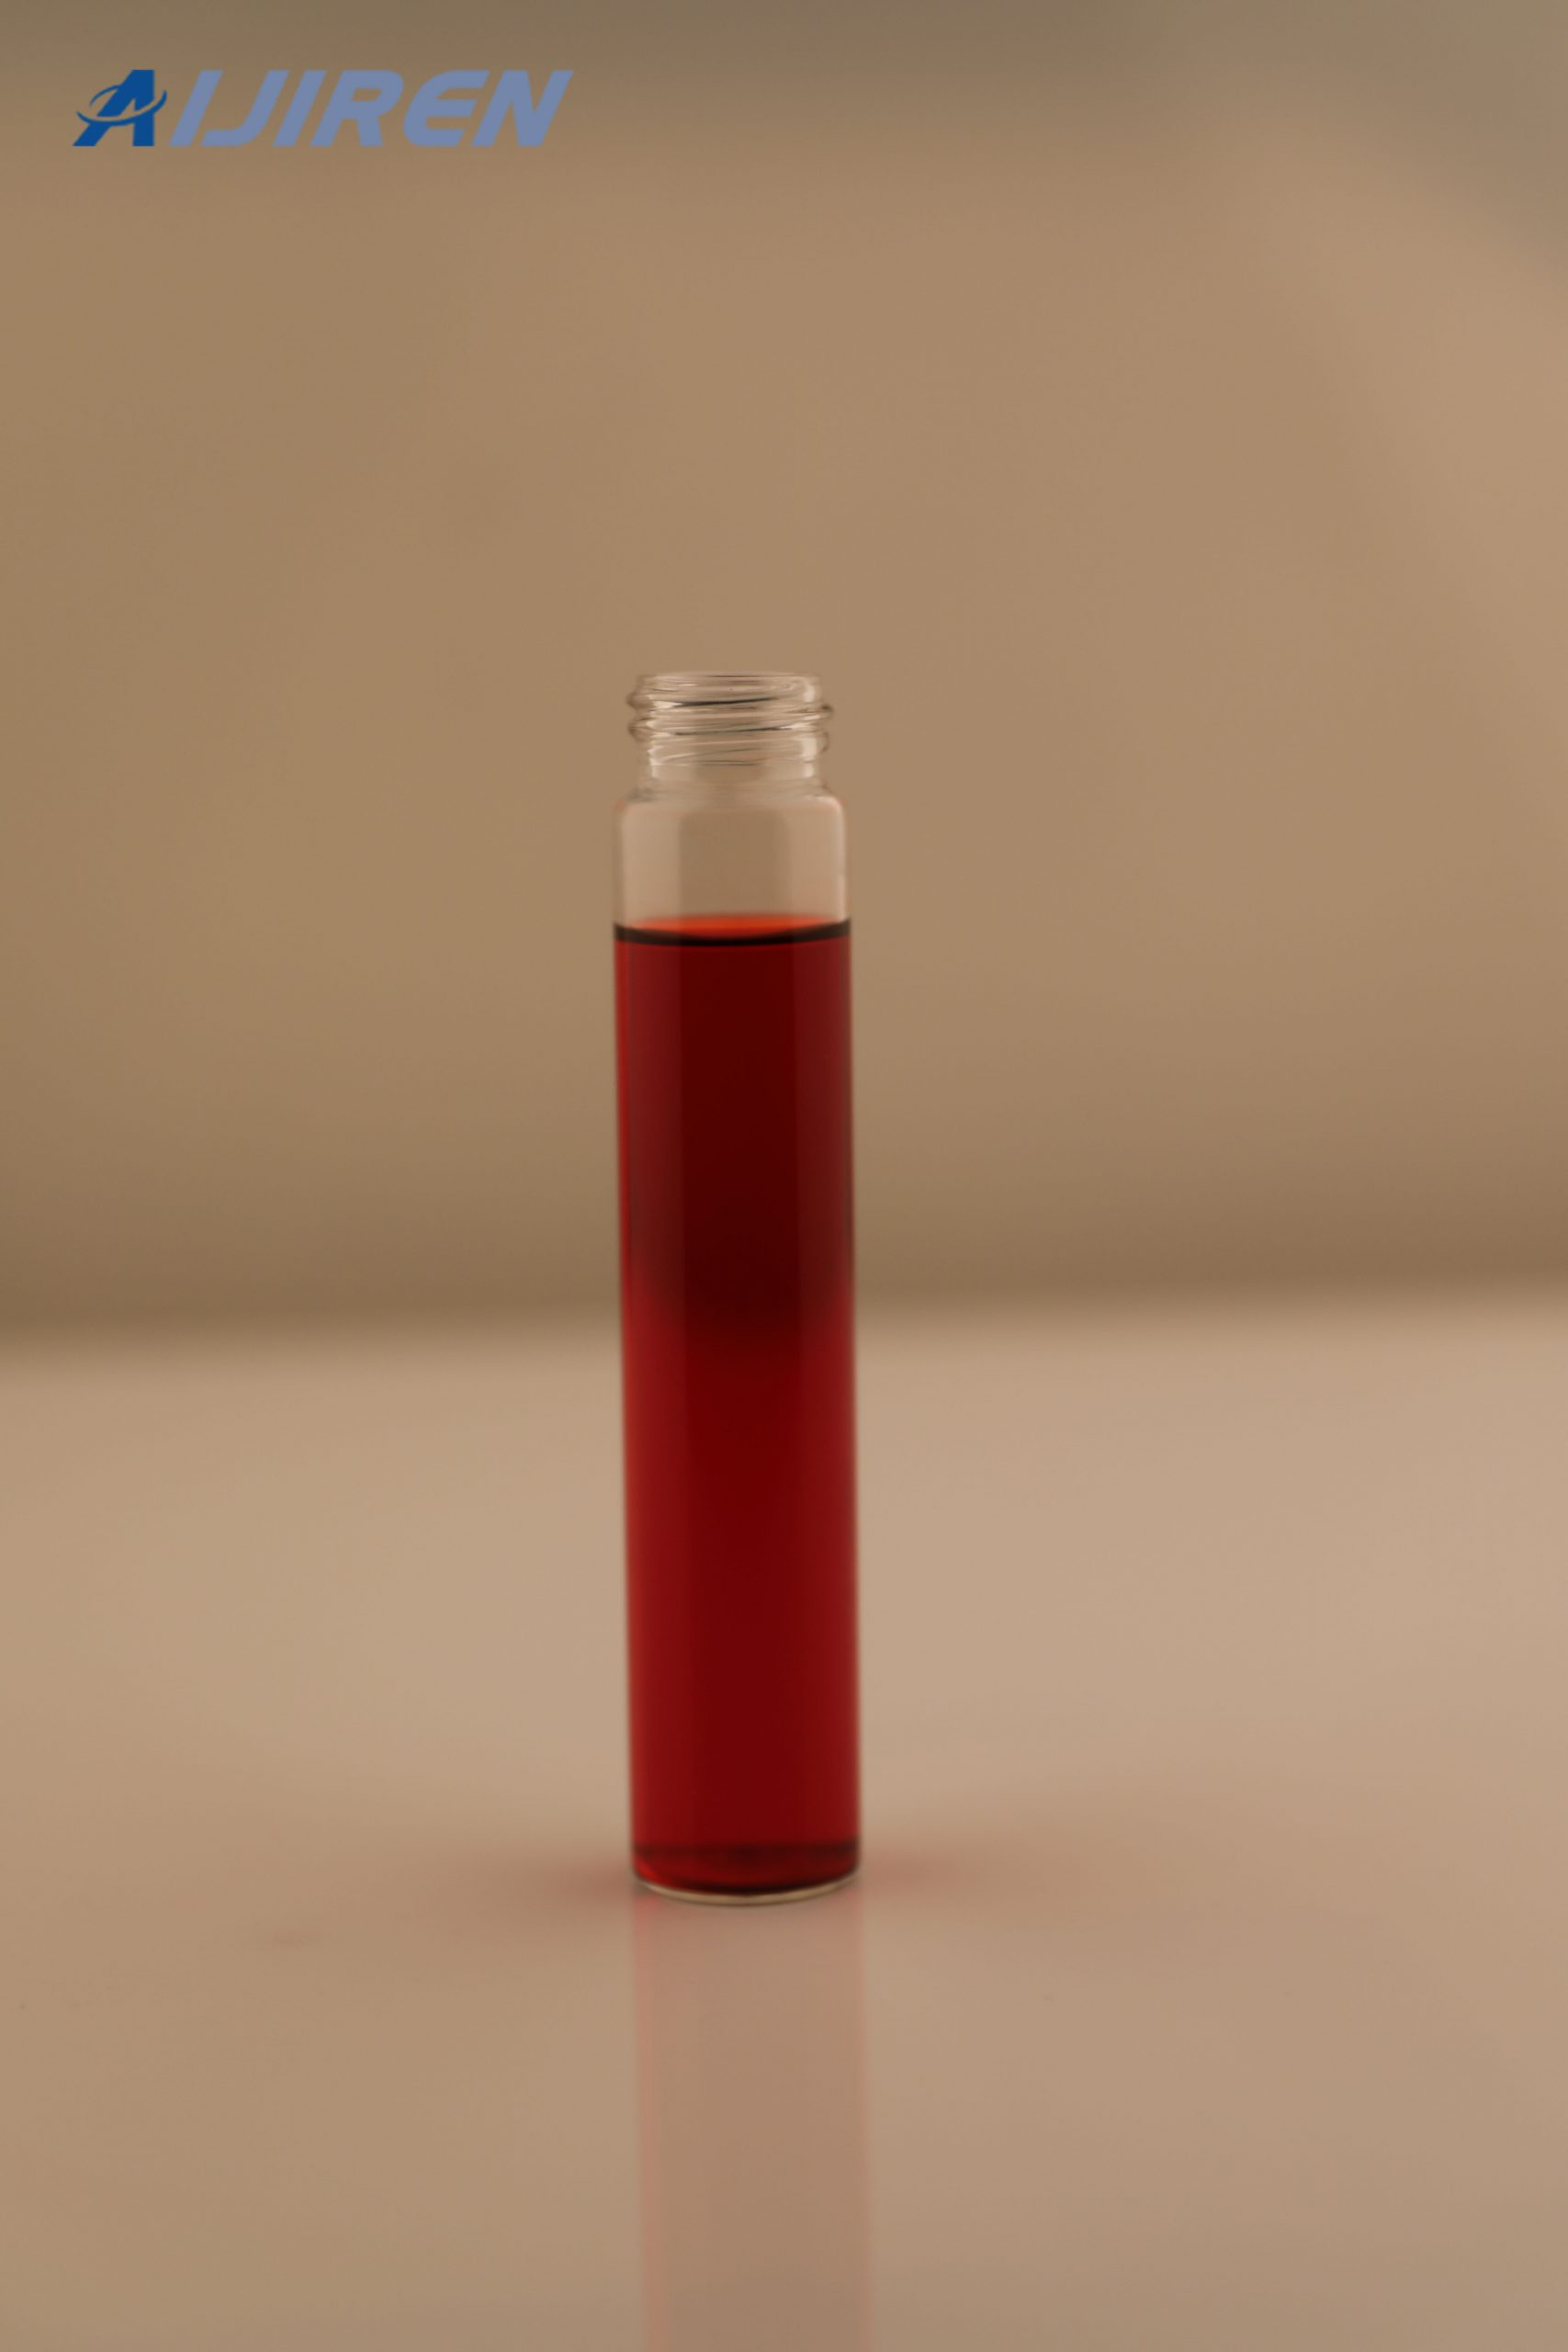 20ml headspace vial40ml Clear Glass Sample Storage Vial for Agilent